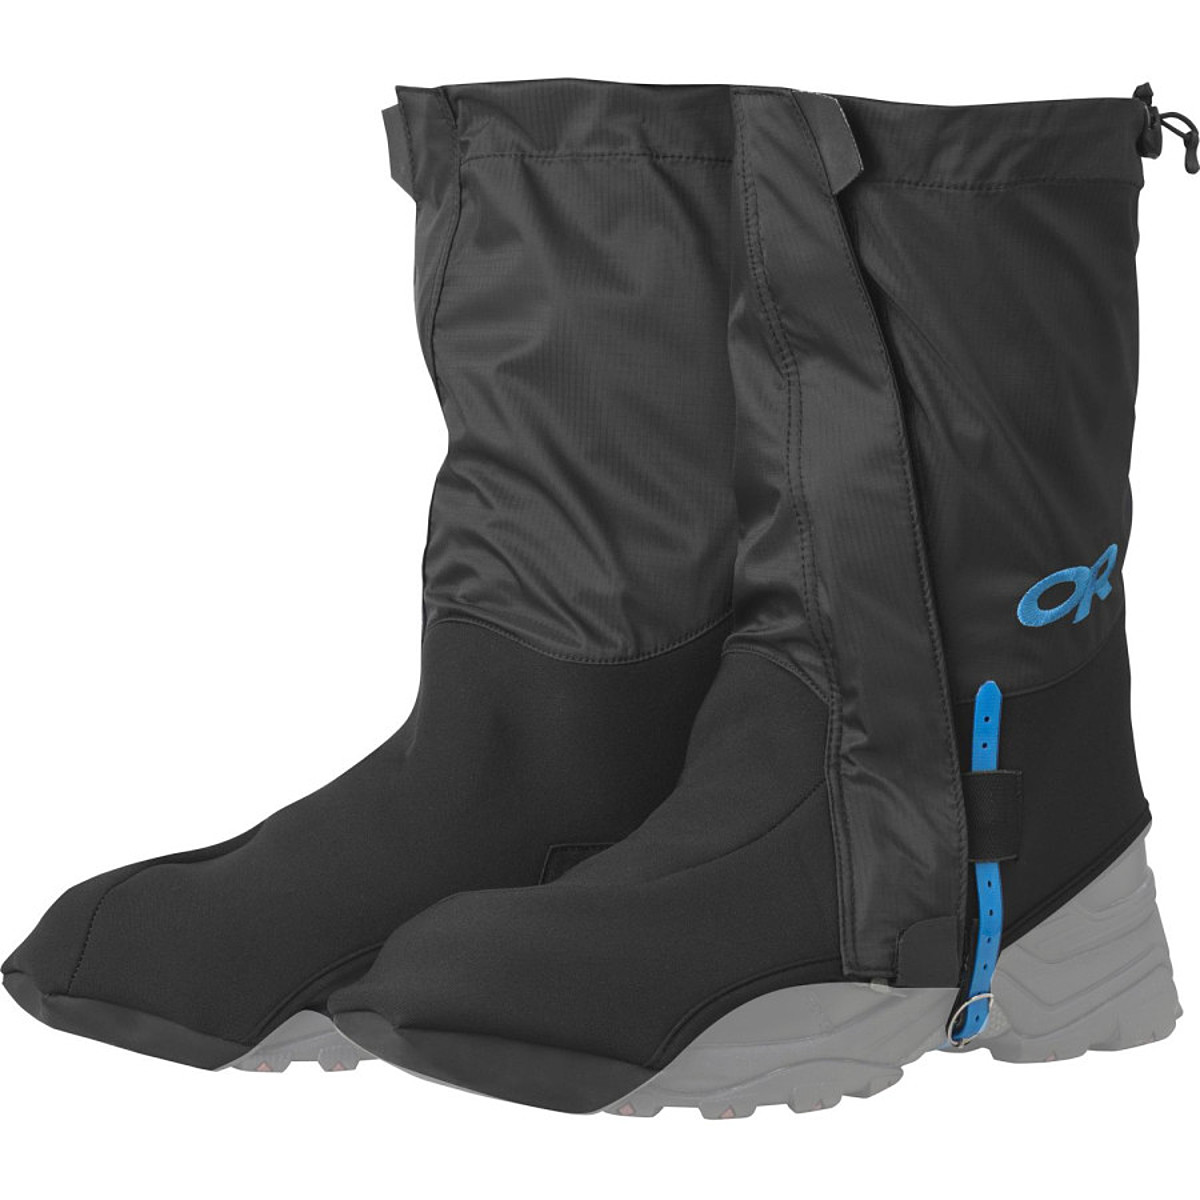 Outdoor Research Huron Gaiters High